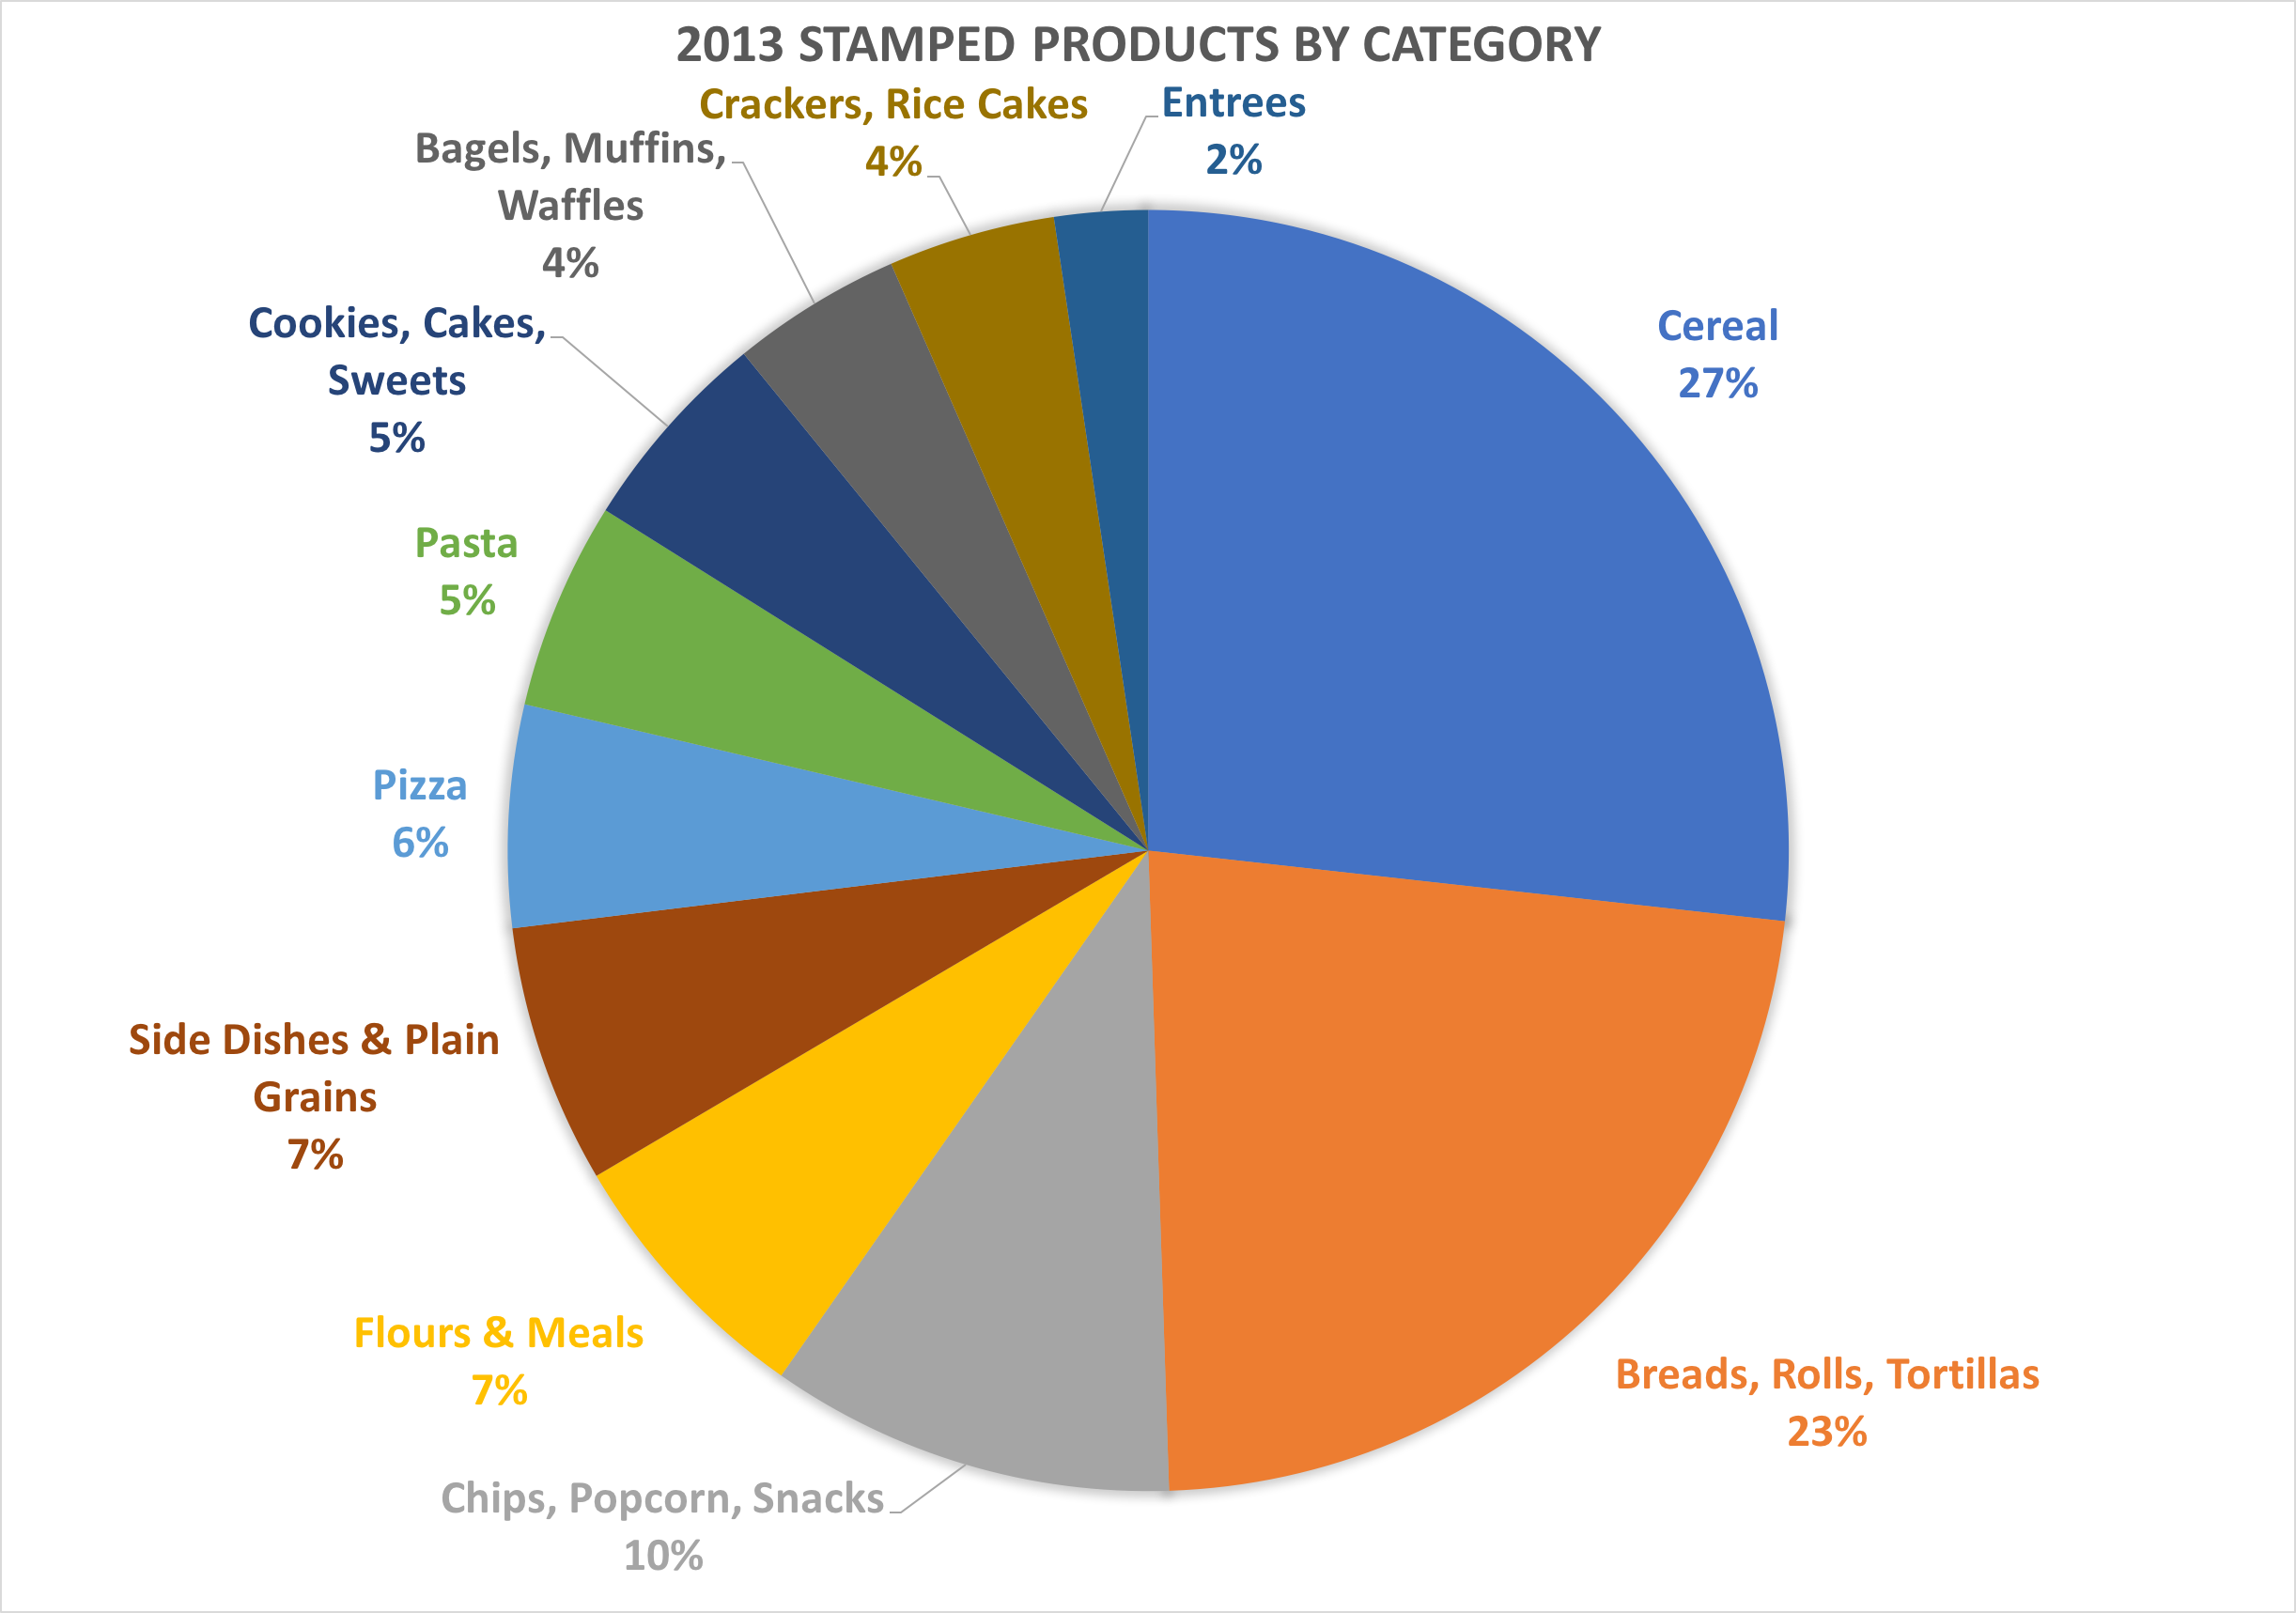 Pie chart of product categories for 2013